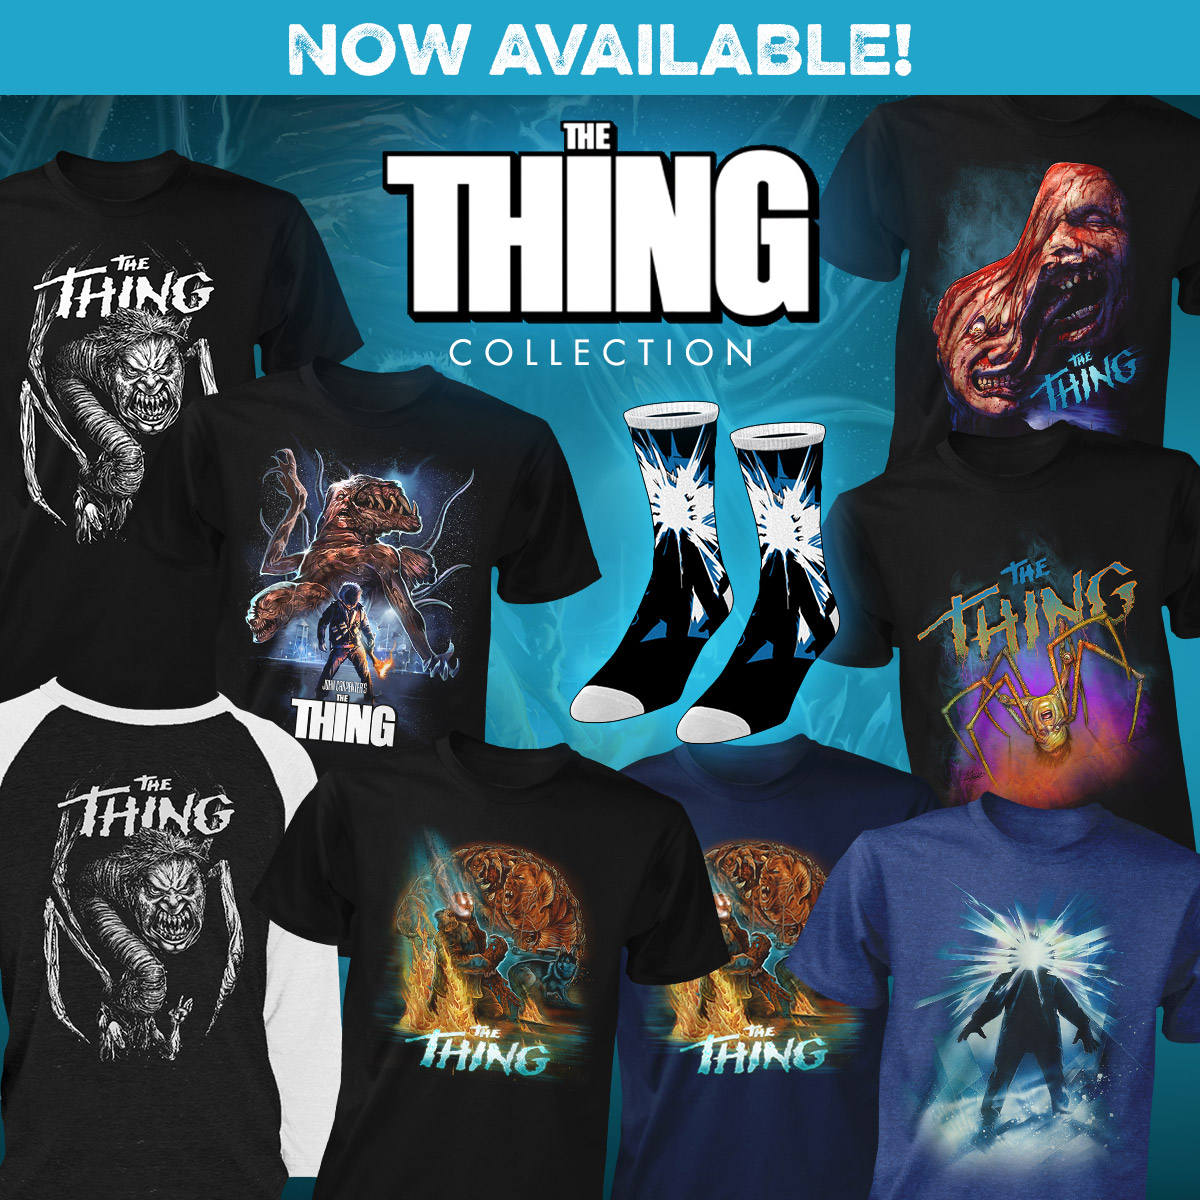 THE THING Apparel Collection Available from FRIGHT RAGS